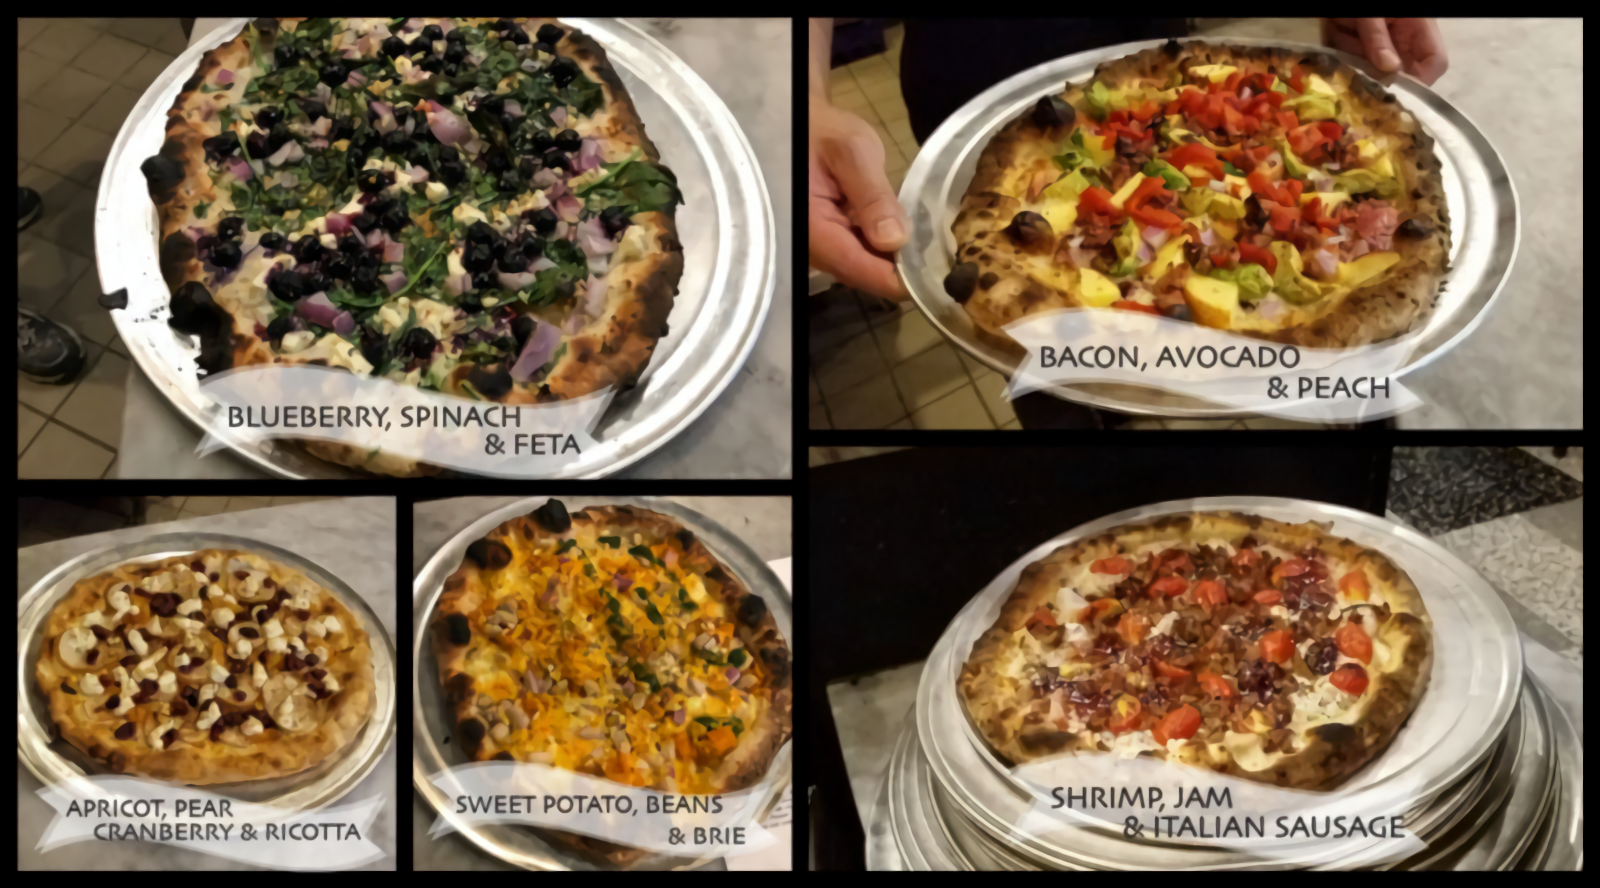 Some of the amazing pizzas!